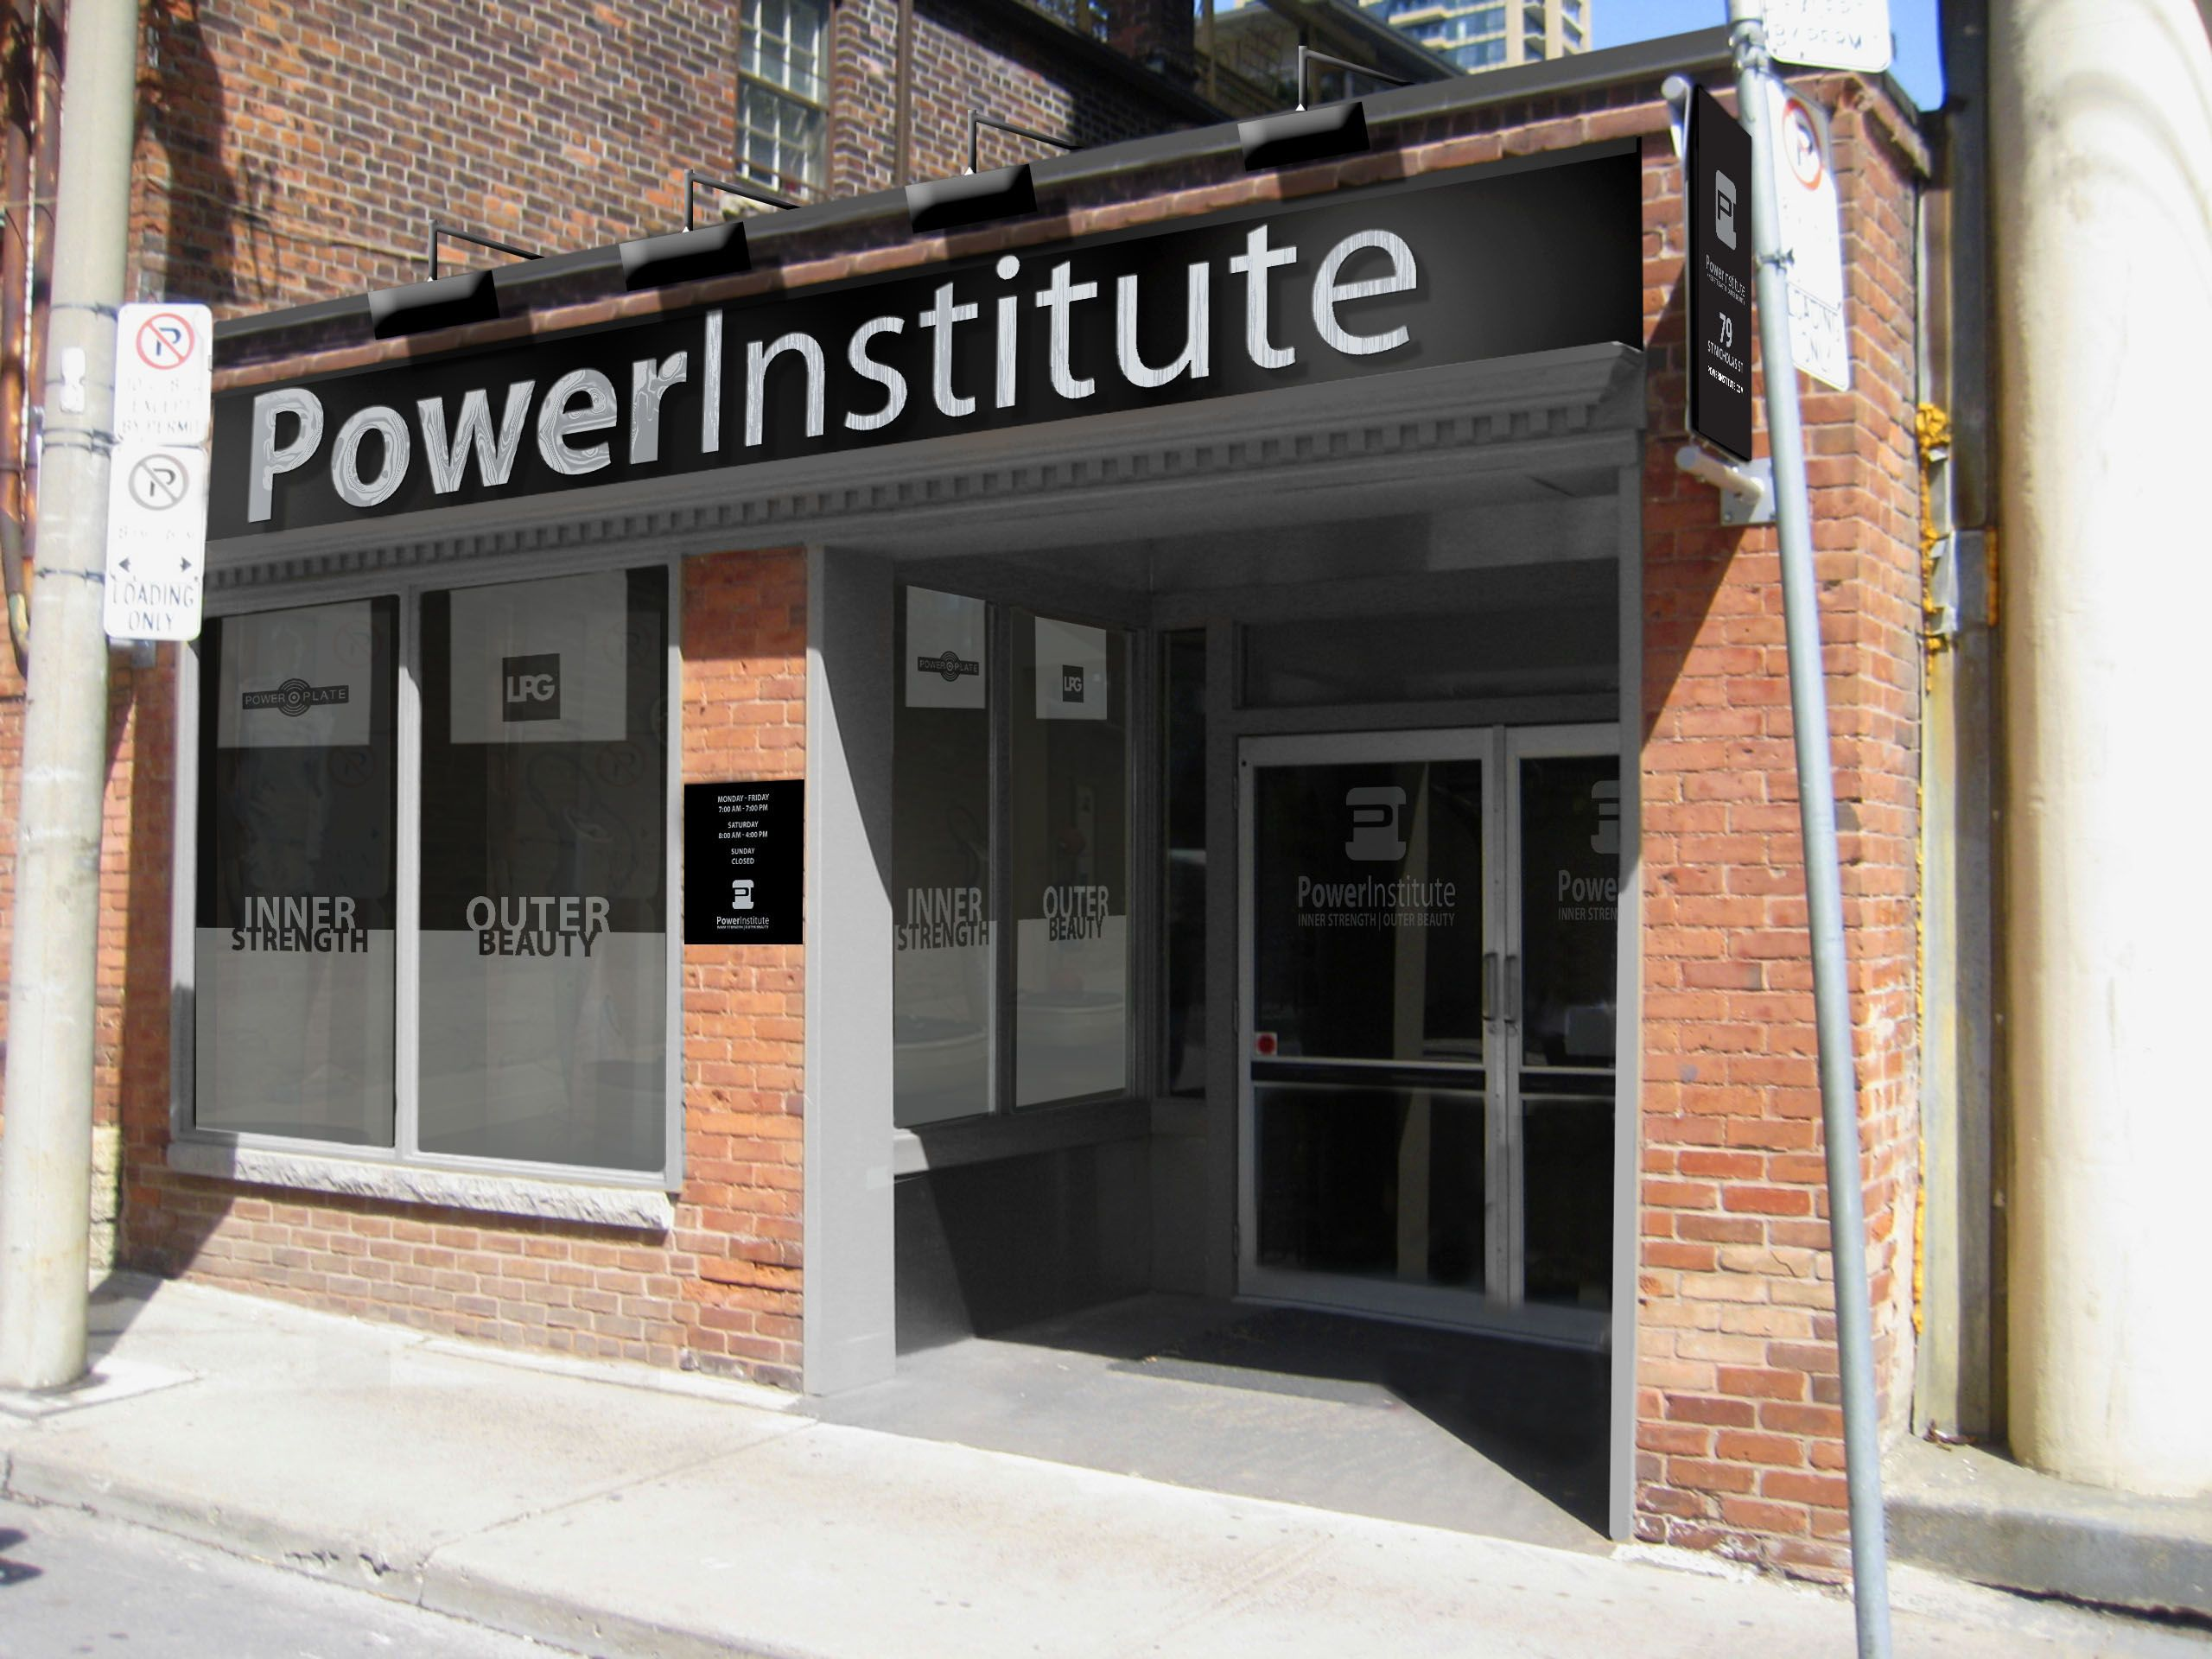 Powerinstitute Crezon Panel With Brushed And Polished Stainless Steel With Images Storefront Signs Outdoor Decor Store Fronts